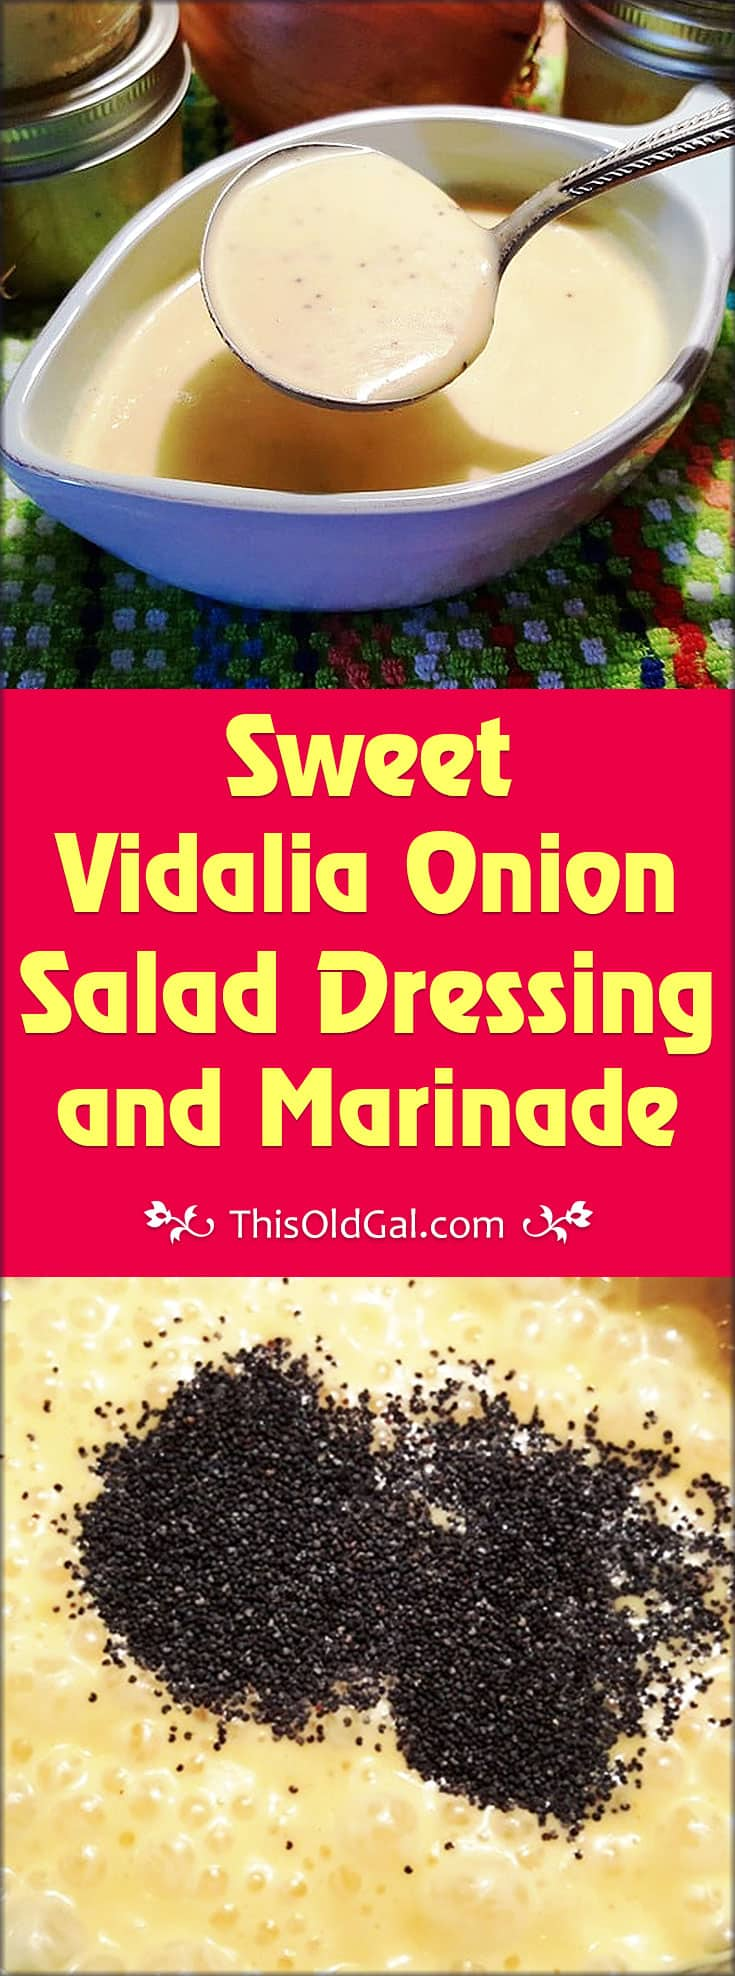 Sweet Vidalia Onion Salad Dressing and Marinade